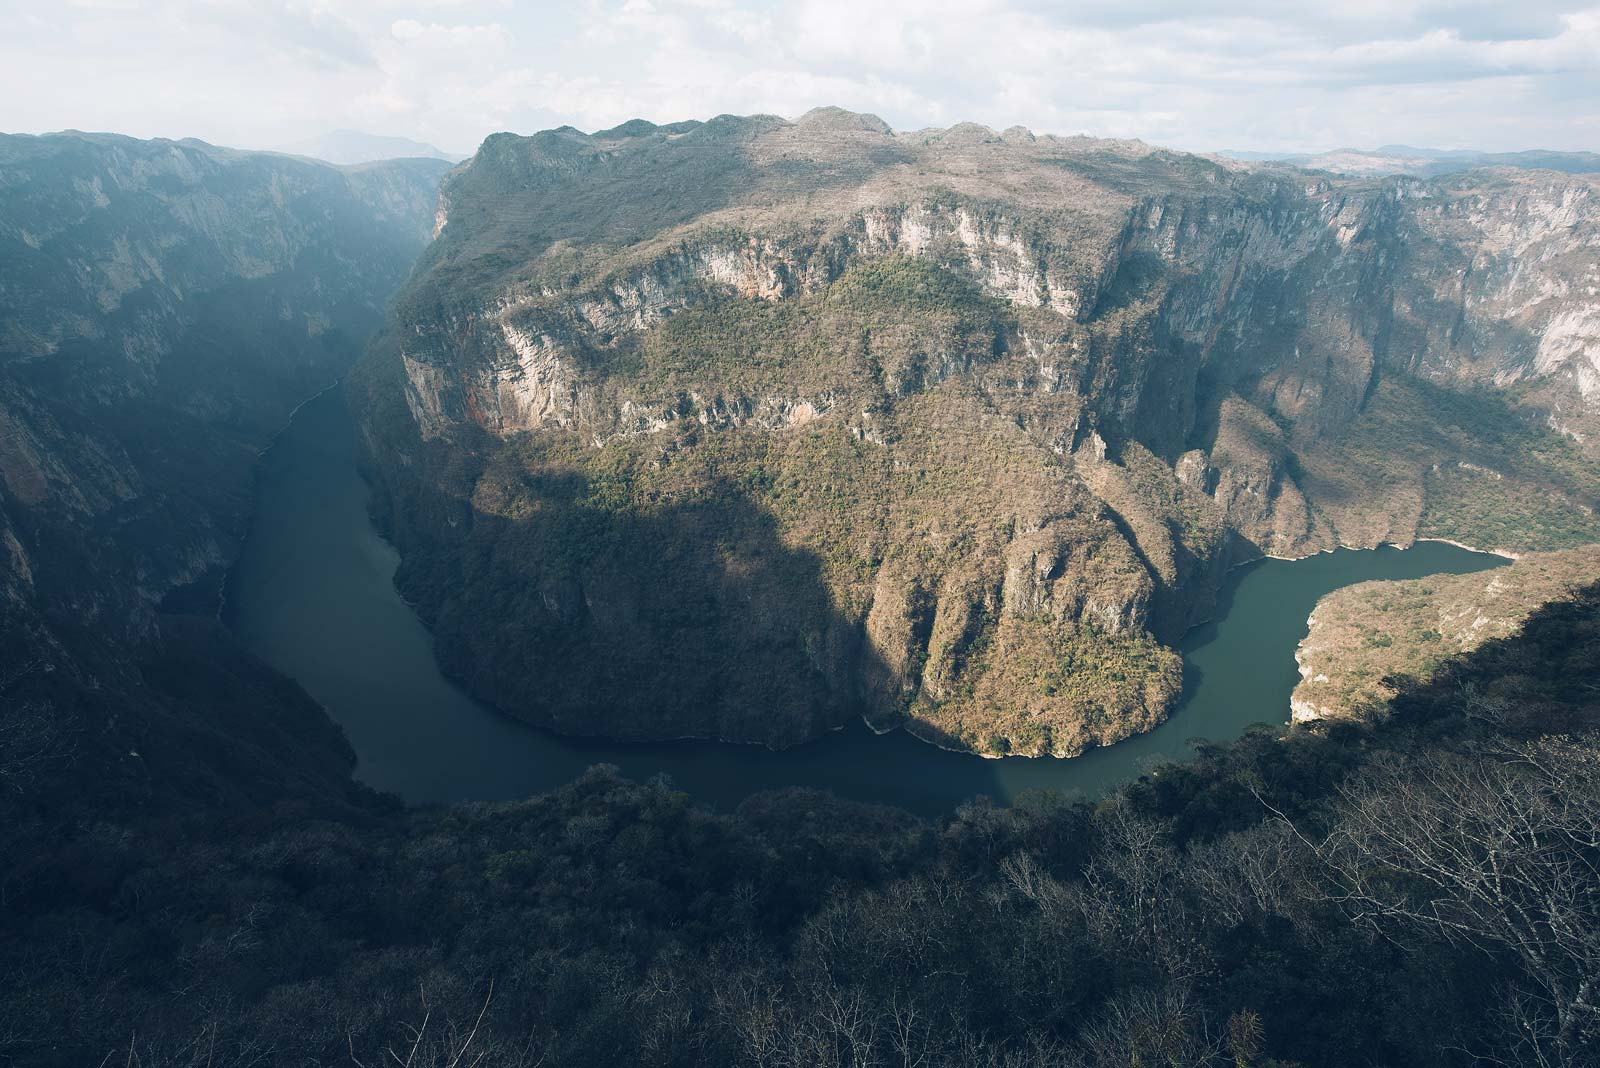 Point de vue, Canon del Sumidero, Chiapas, Mexique